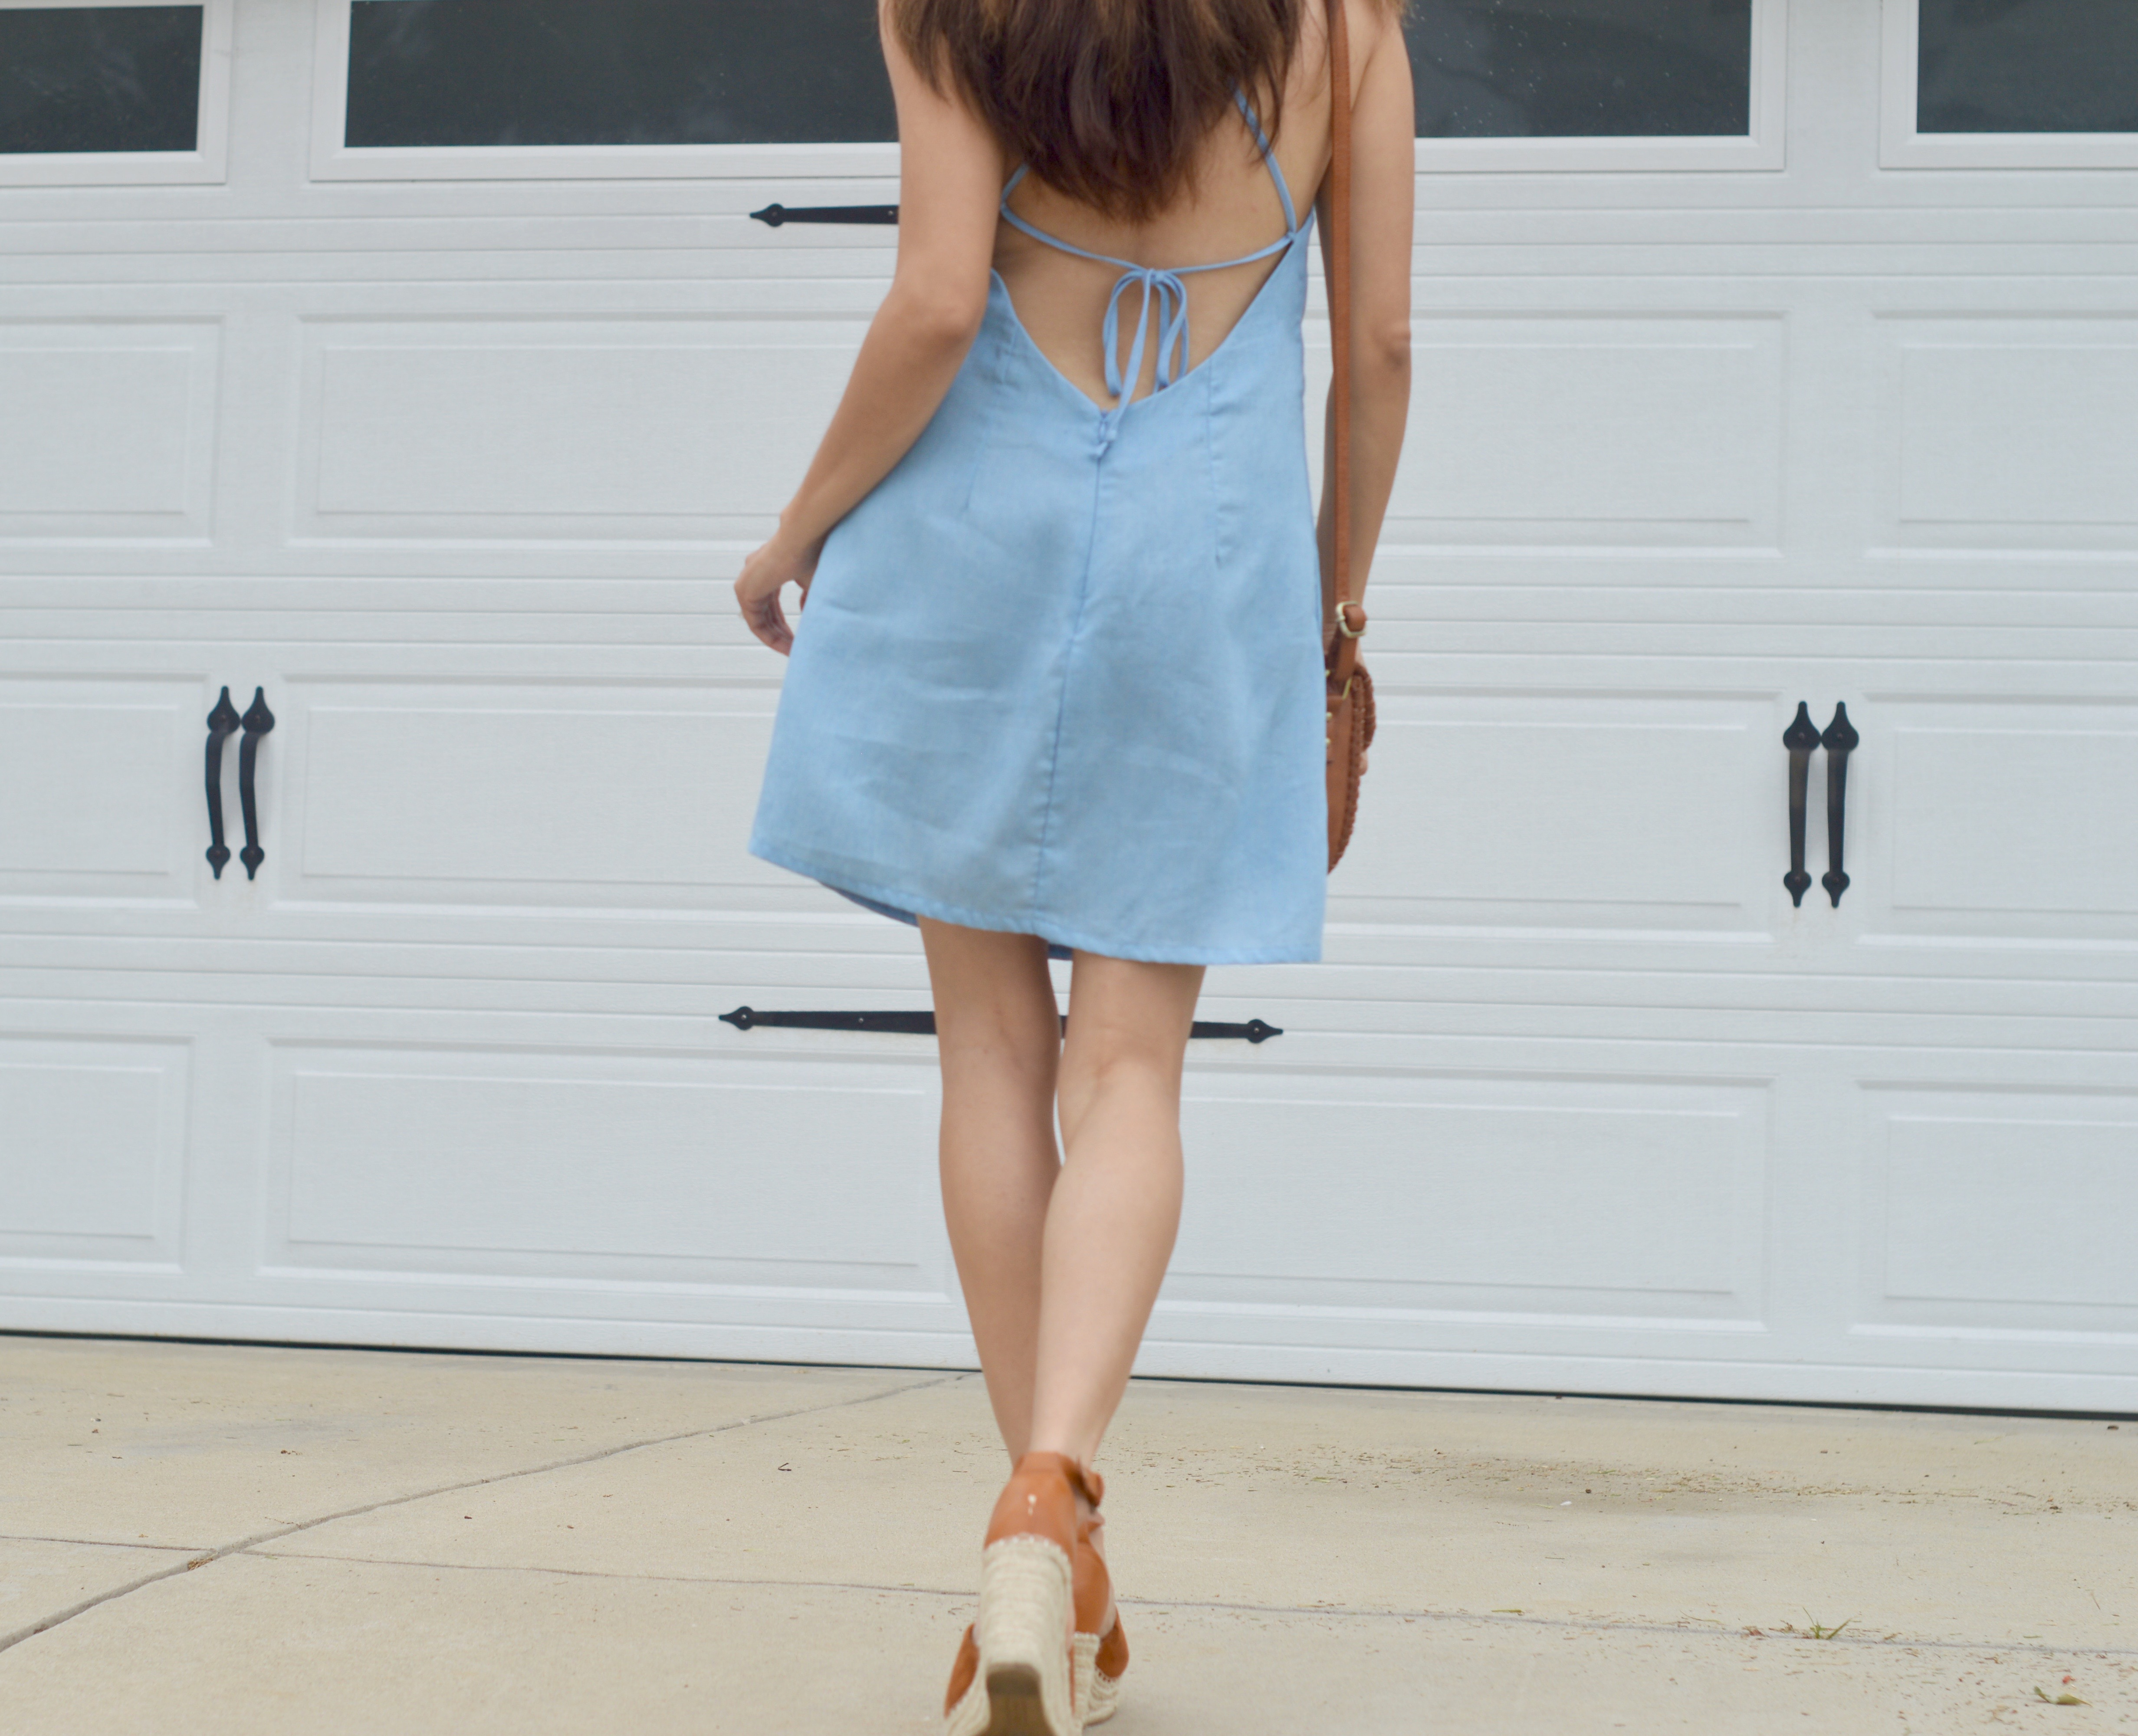 Tobi.com, my favorite dress for summer, Spring tops, blue dress, target tops, blue shift dress, spring shopping, women clothes, statement earrings, spring fashion, summer fashion, shop my blog, shopping, shop what I wear, Tobi, fashion blog, fashion blogger, fashion, ootd